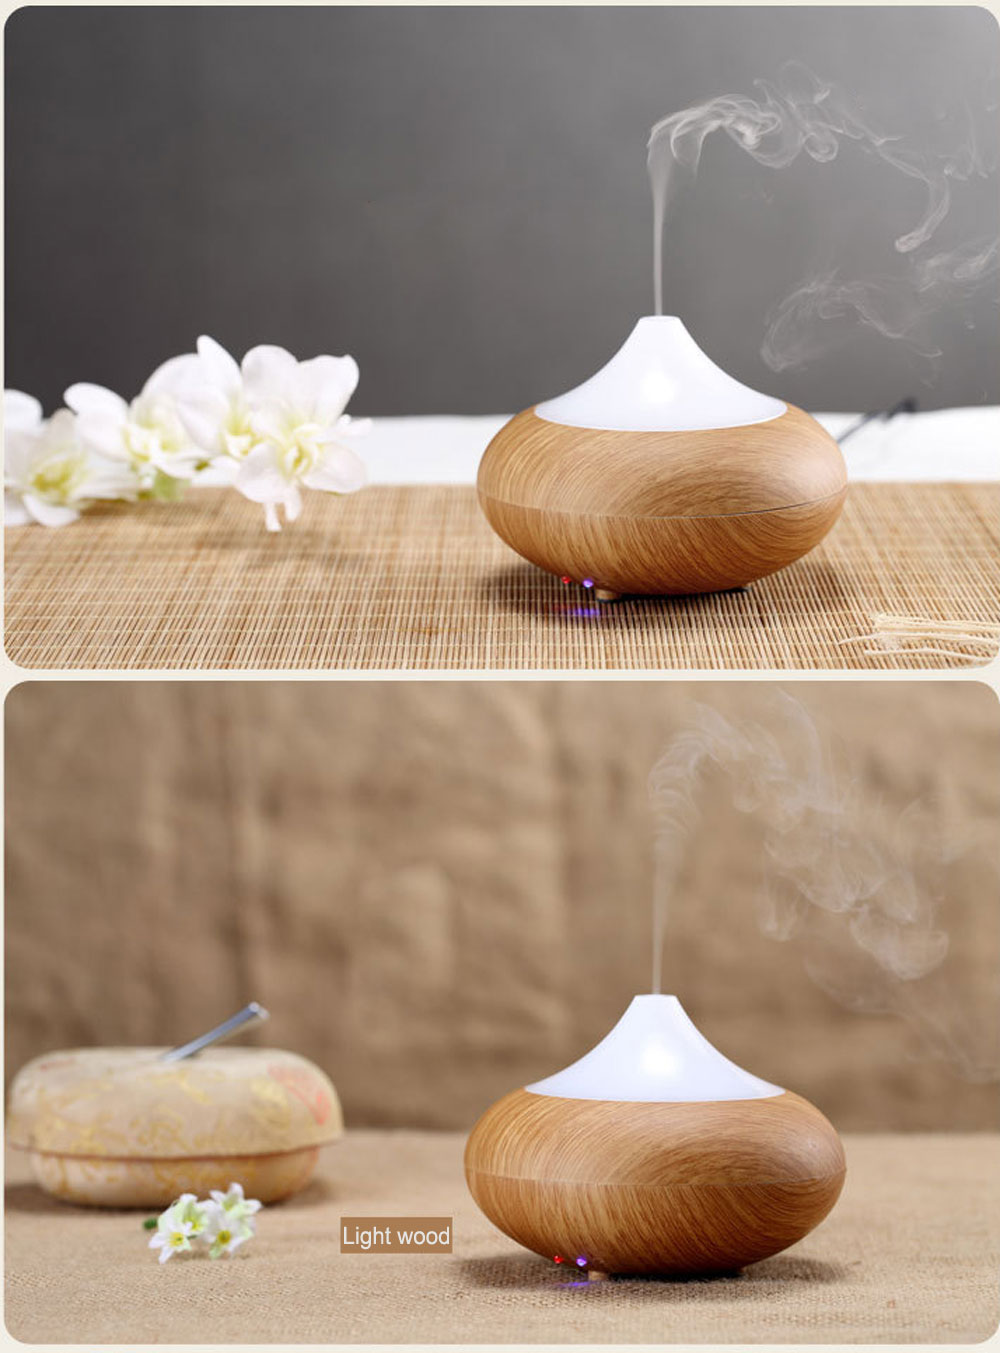 GX Diffuser Air Ultrasonic Humidifier Perfume Aromatherapy Diffuser Humidifier Air Purifier LED Light For Home Conditioning household appliances air purifier aroma diffuser for home car air freshener air conditioning outlet perfume fragrant fresheners